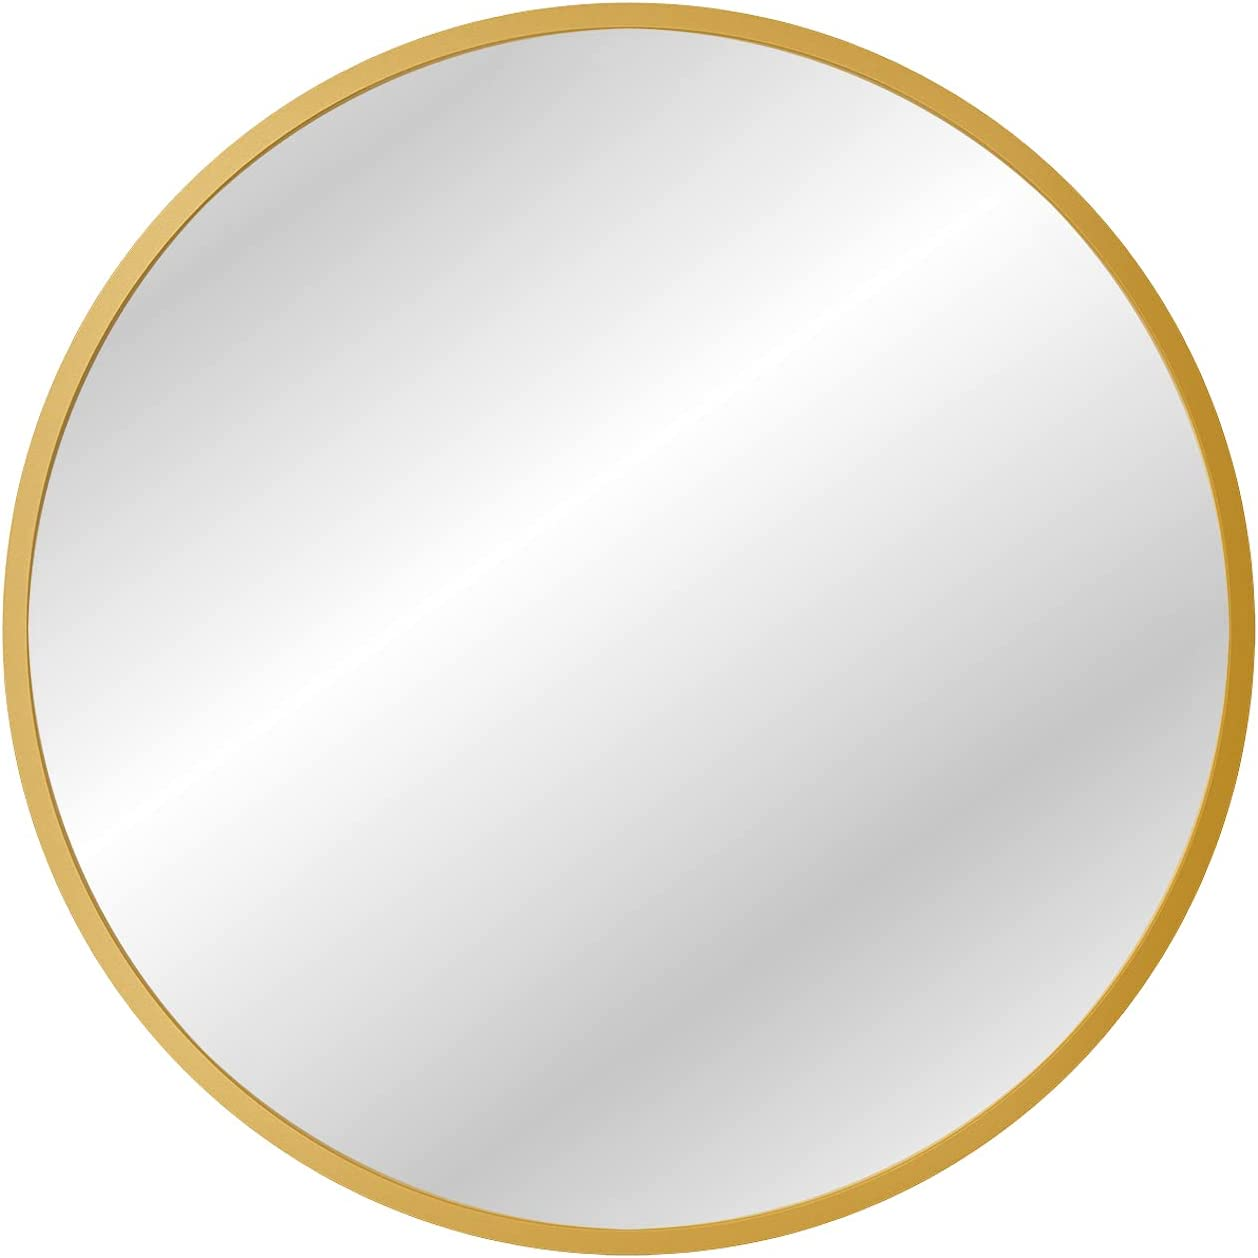 X Home 36 Inch Gold Round Mirror, Round Brass Mirror Metal Frame, Brushed Gold Circle Mirrors for Wall Decor, Bathroom, Entryway, Vanity, and More, Antique & Vintage Style